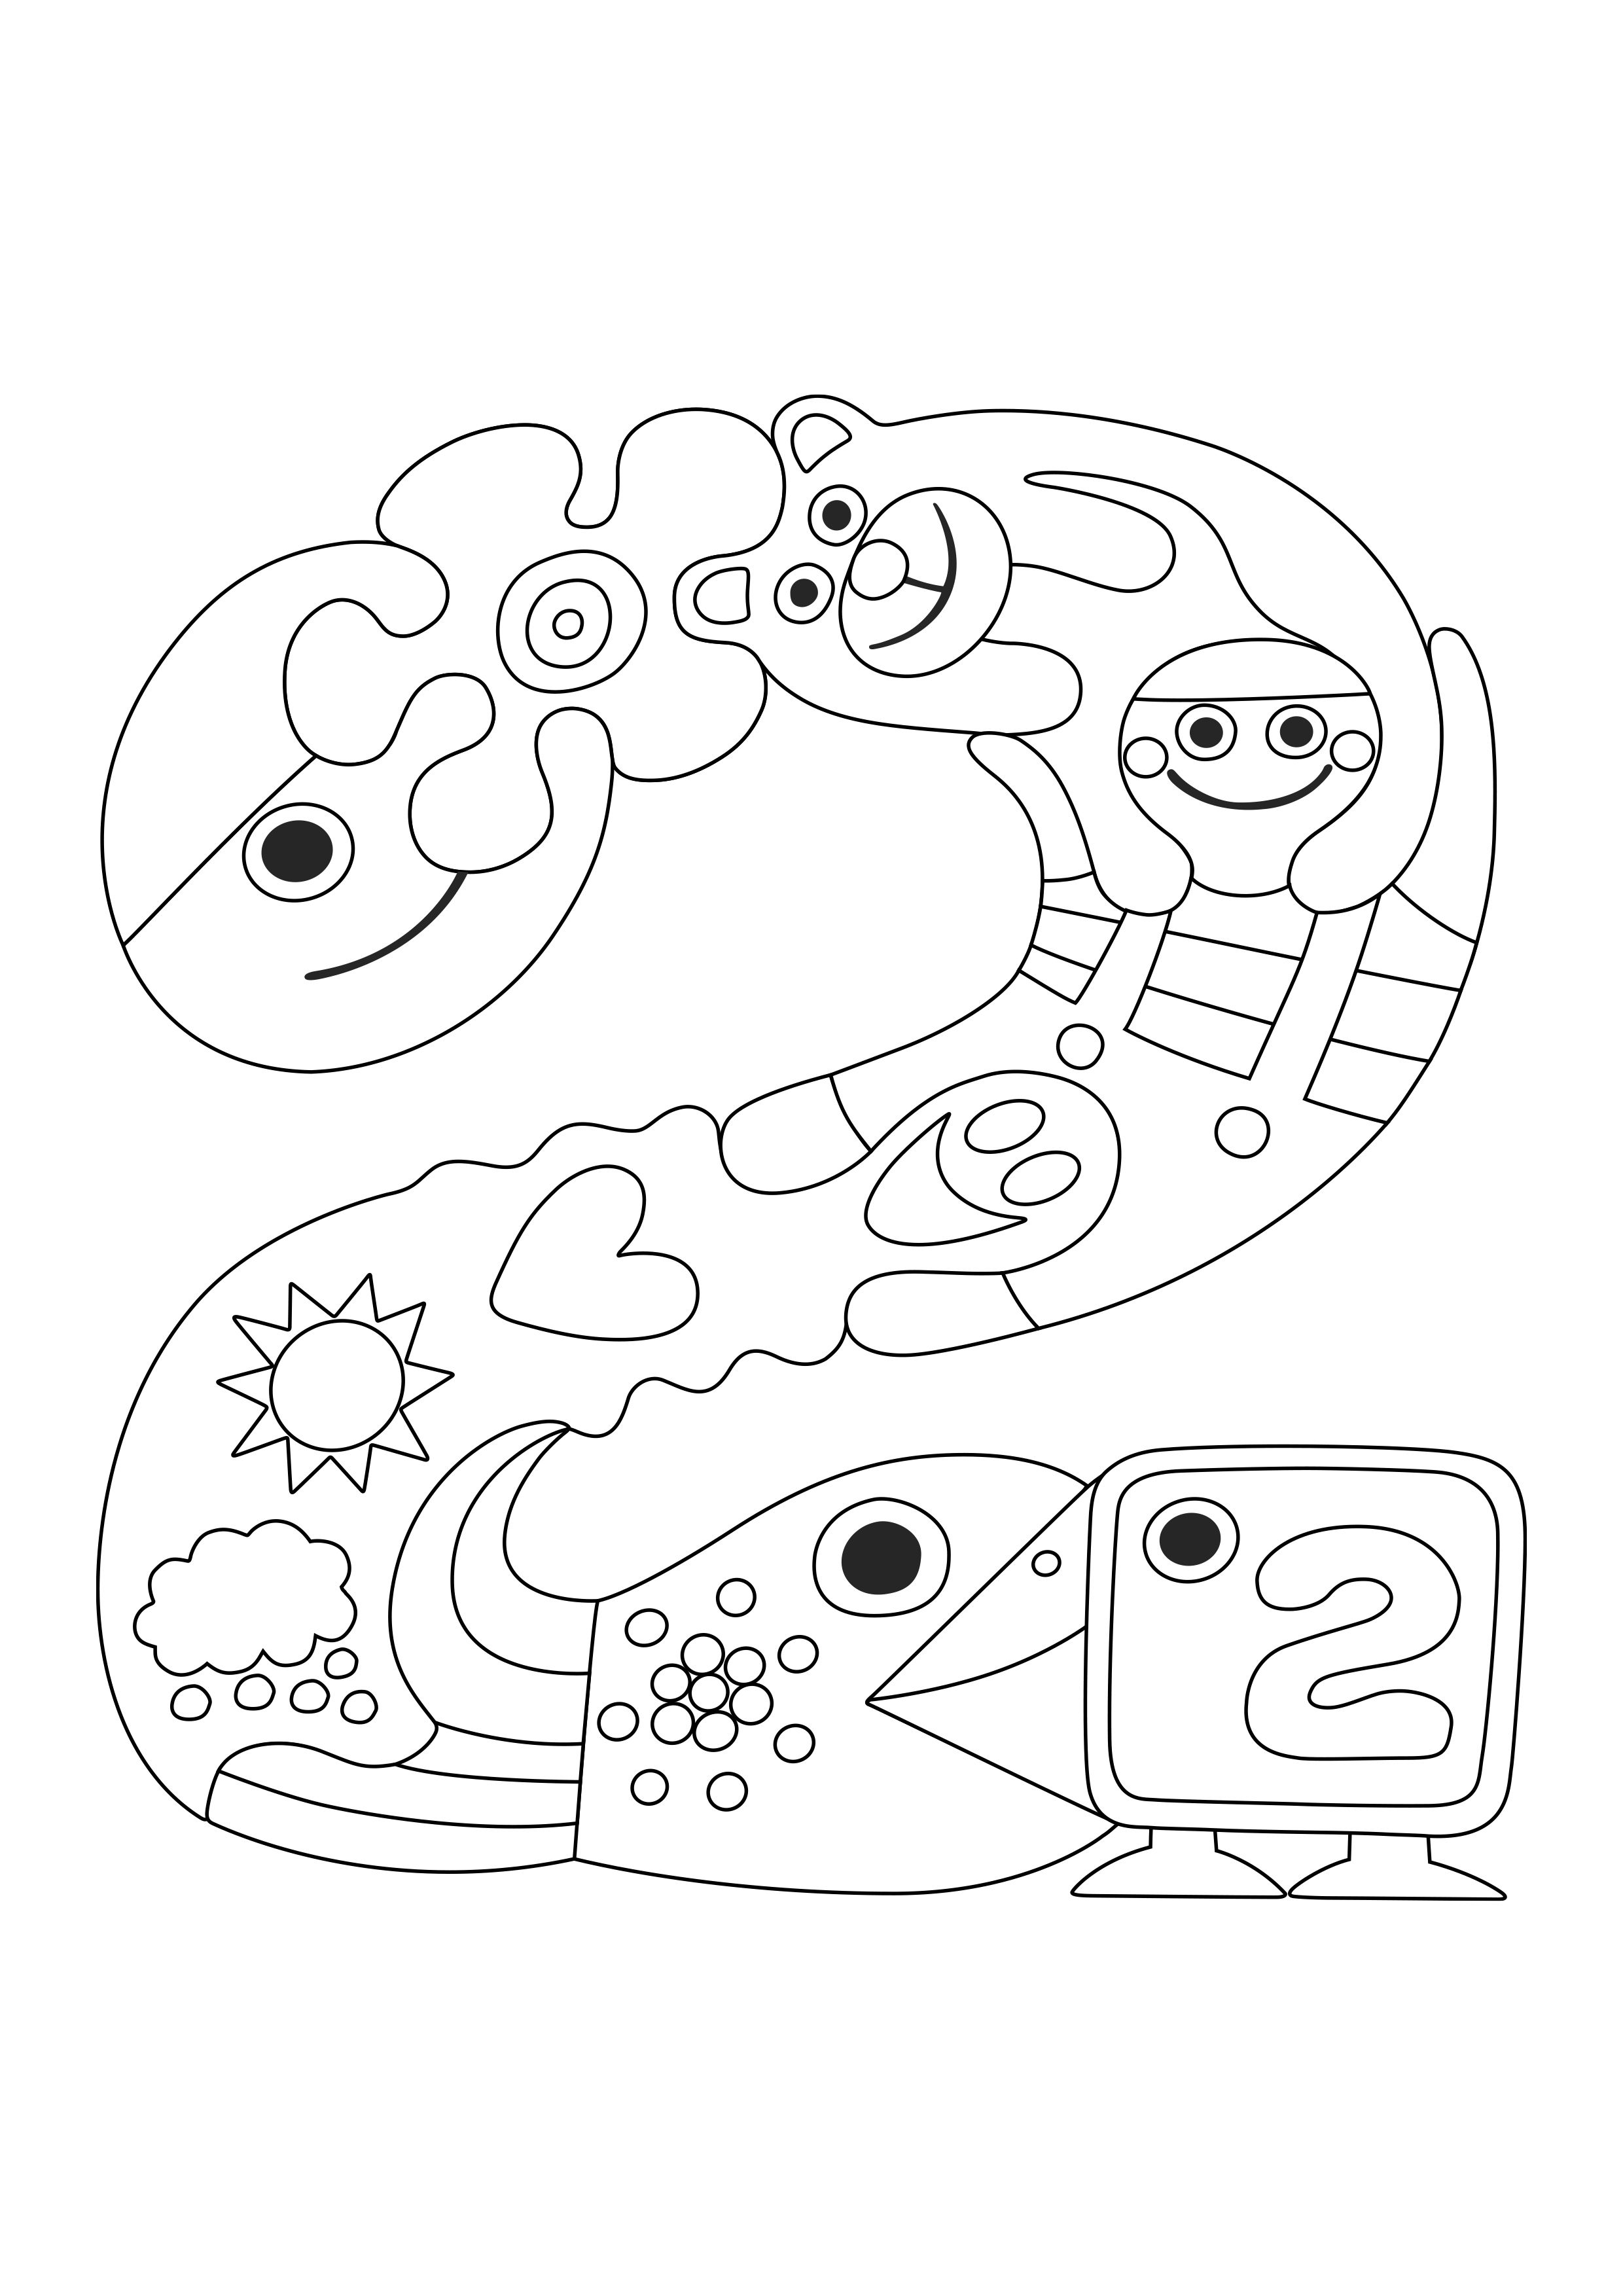 Pikku Kakkosen logo | värityskuva | lasten | askartelu | käsityöt | koti | värittäminen | free printable pattern | DIY ideas | kid crafts |  home | colouring | Pikku Kakkonen